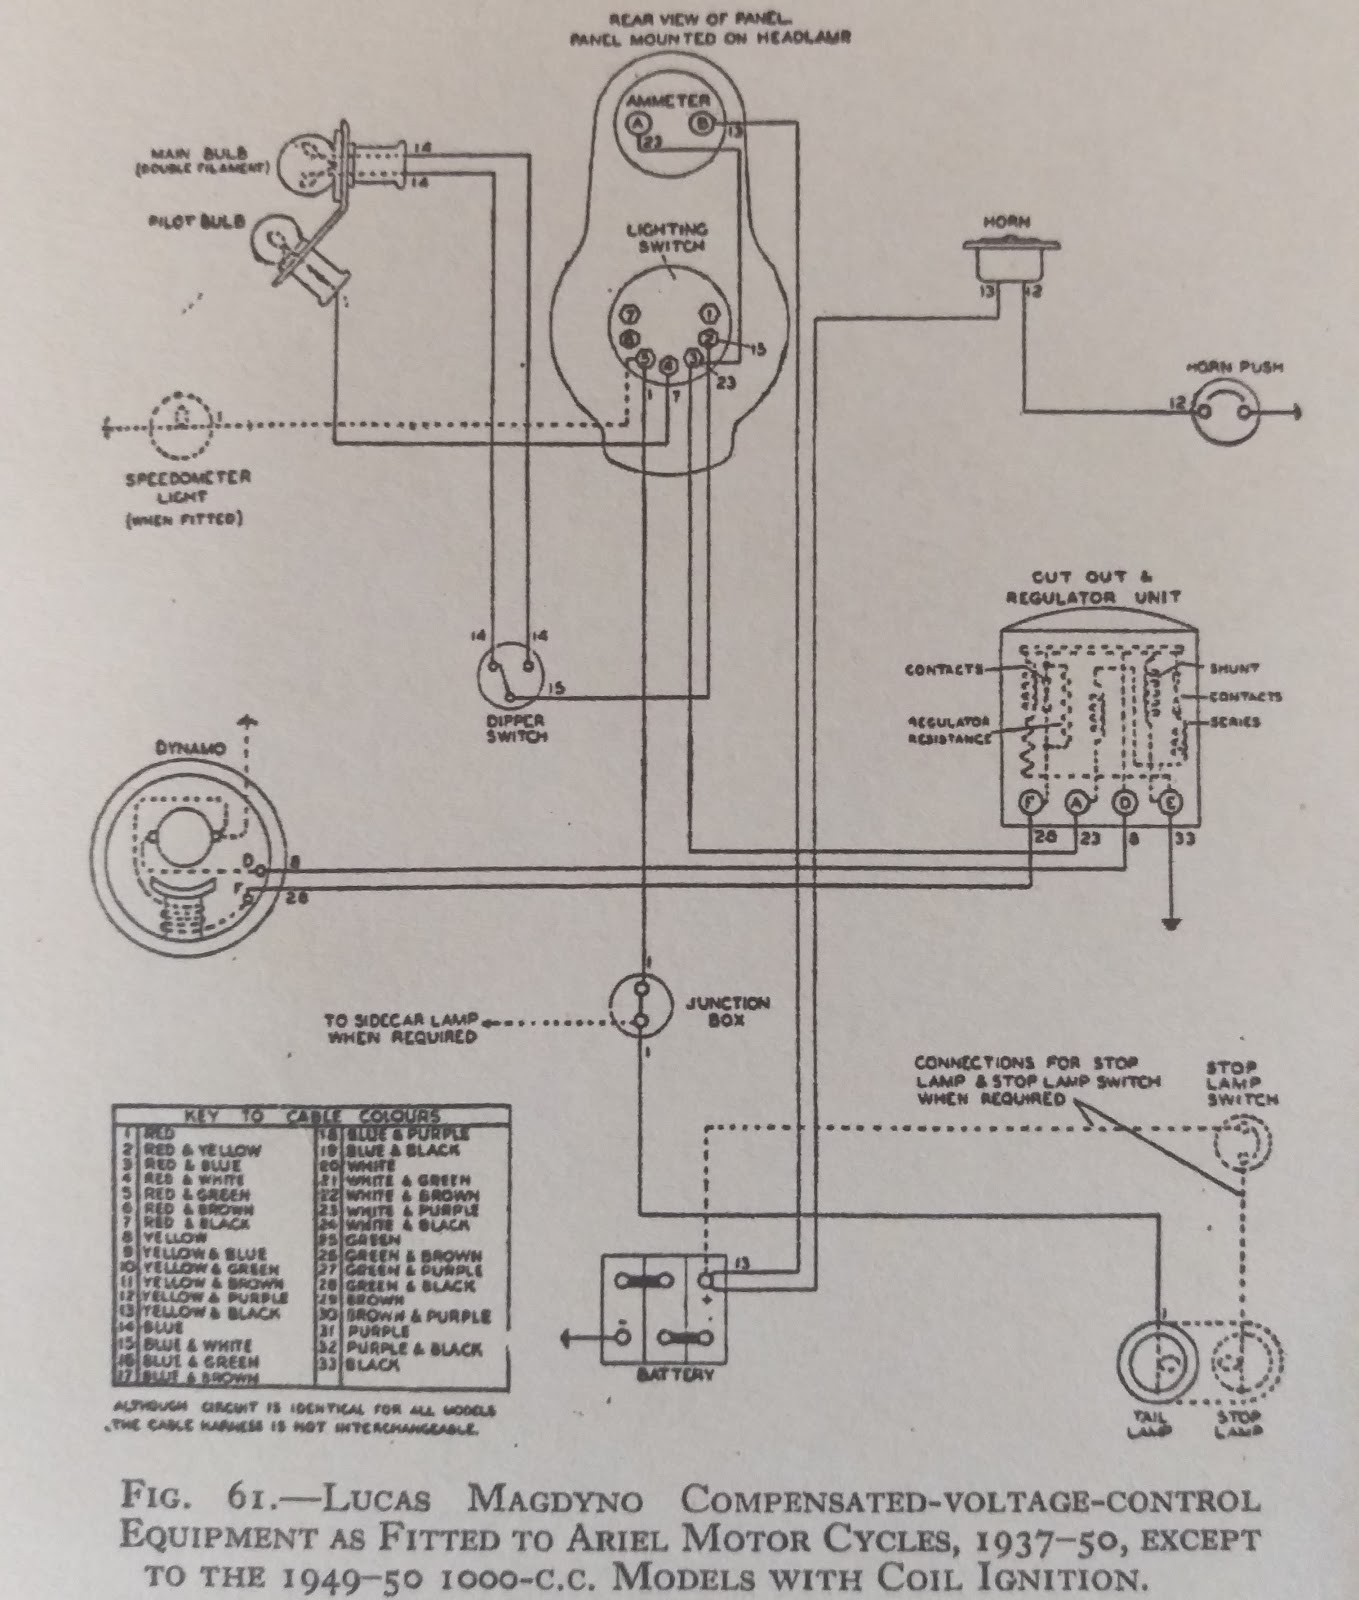 medium resolution of negative bsa ground wiring diagram wiring diagrams long 1965 bsa 6 volt positive ground wiring diagram